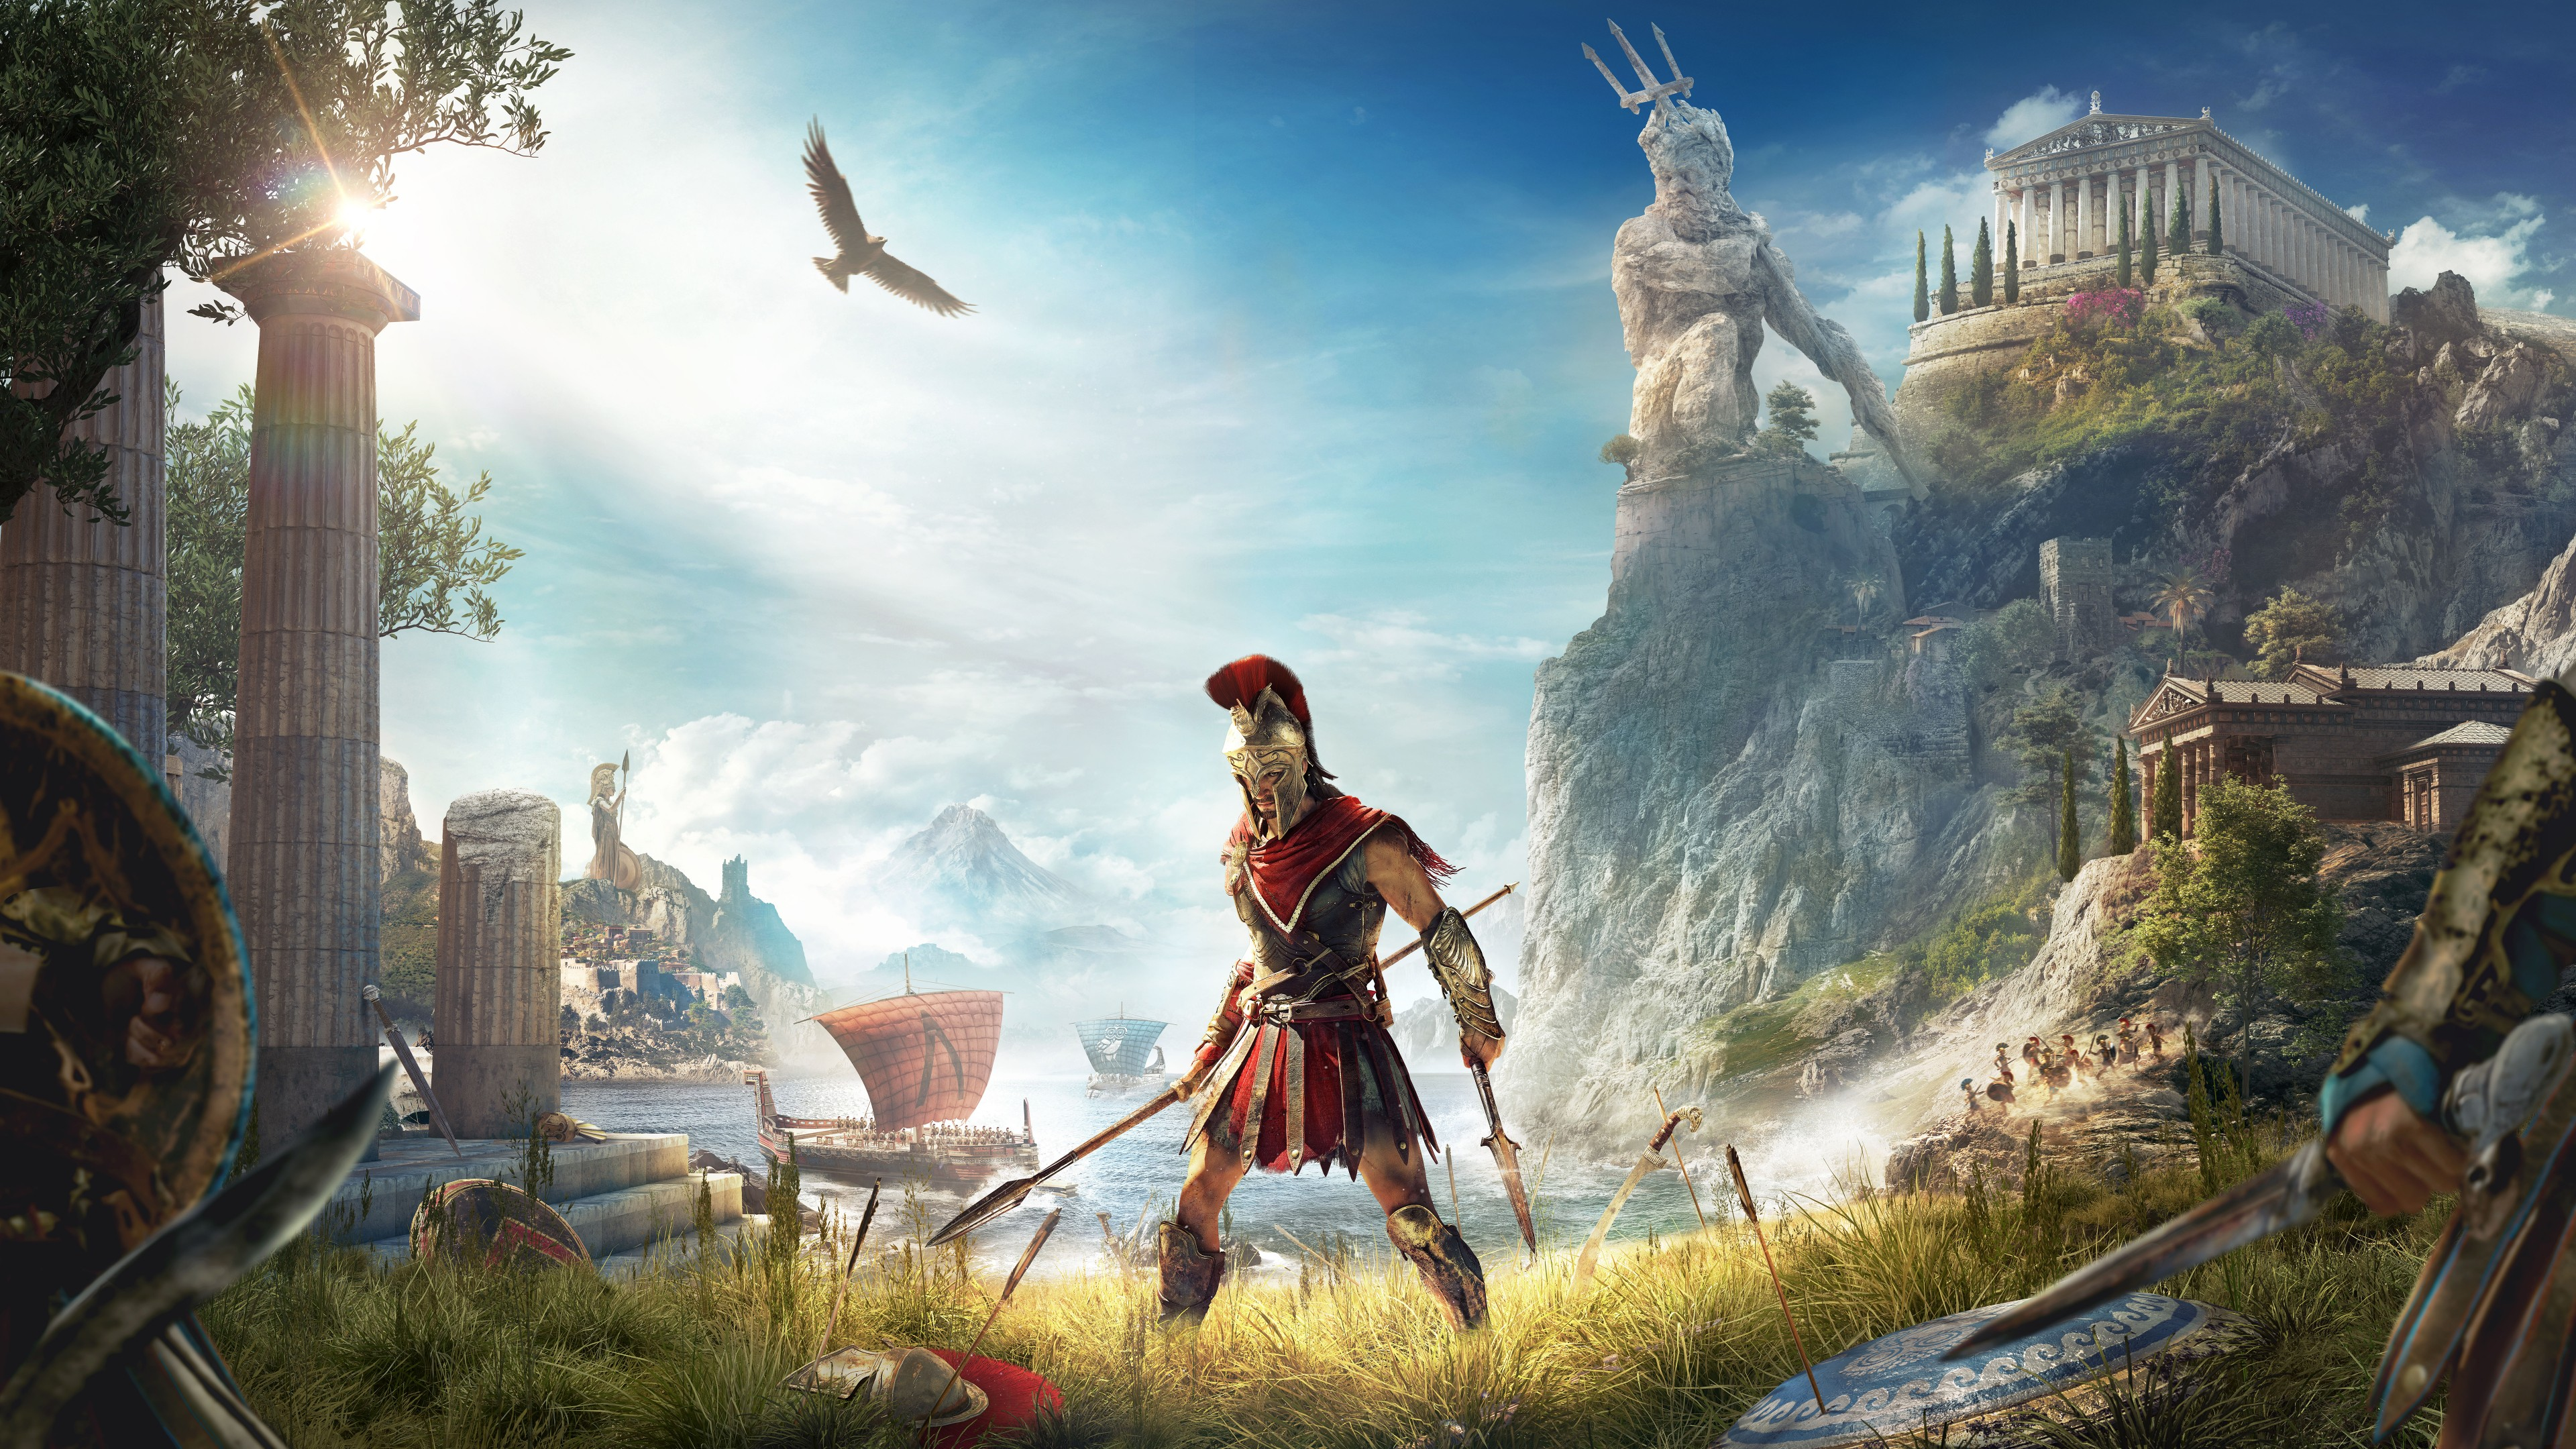 3d Wallpaper For Ipad Pro Assassin S Creed Odyssey 4k 8k Wallpapers Hd Wallpapers